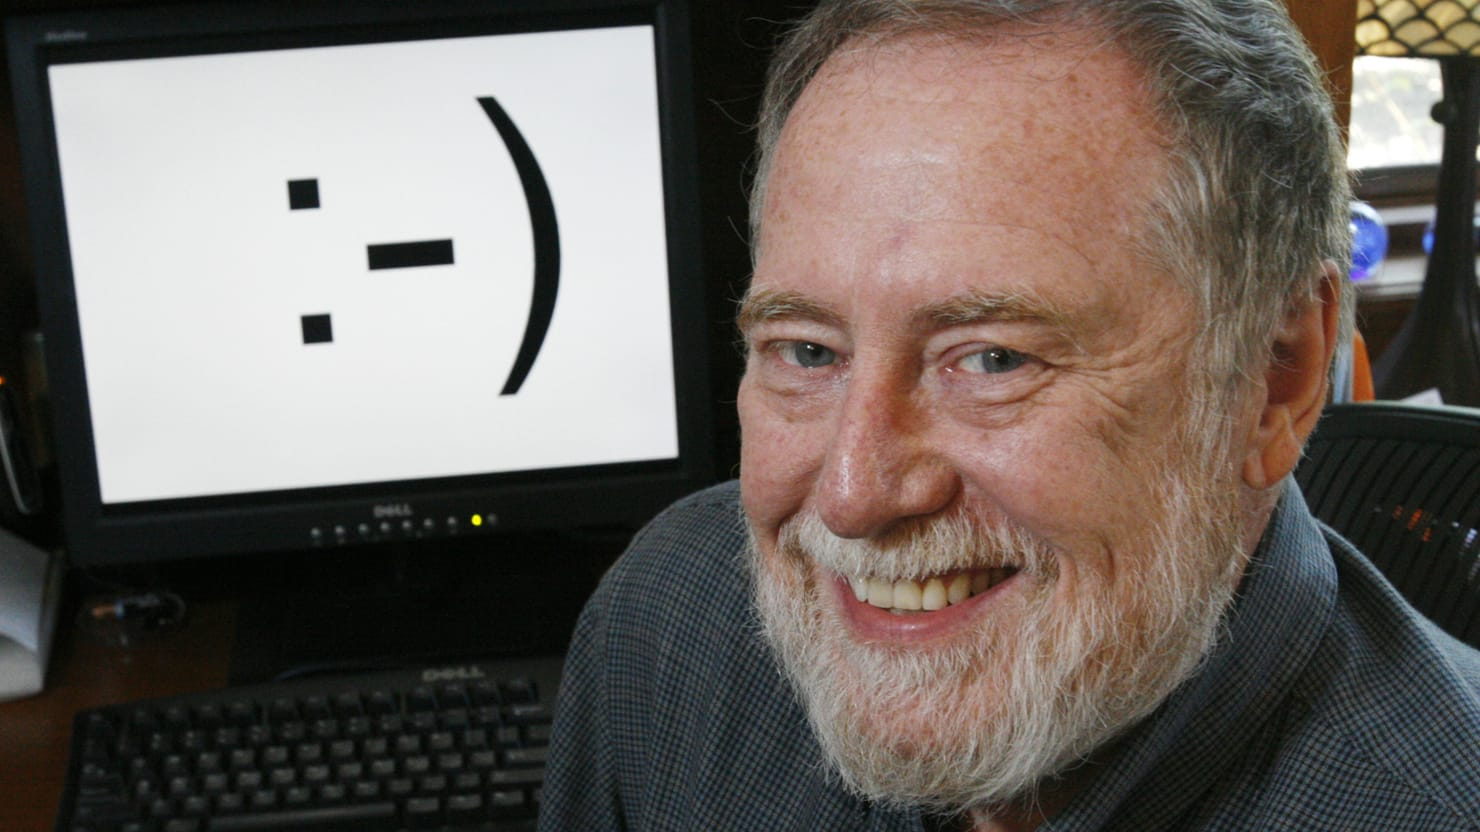 The Inventor of the Emoticon Tells All: 'I've Created a Virus'